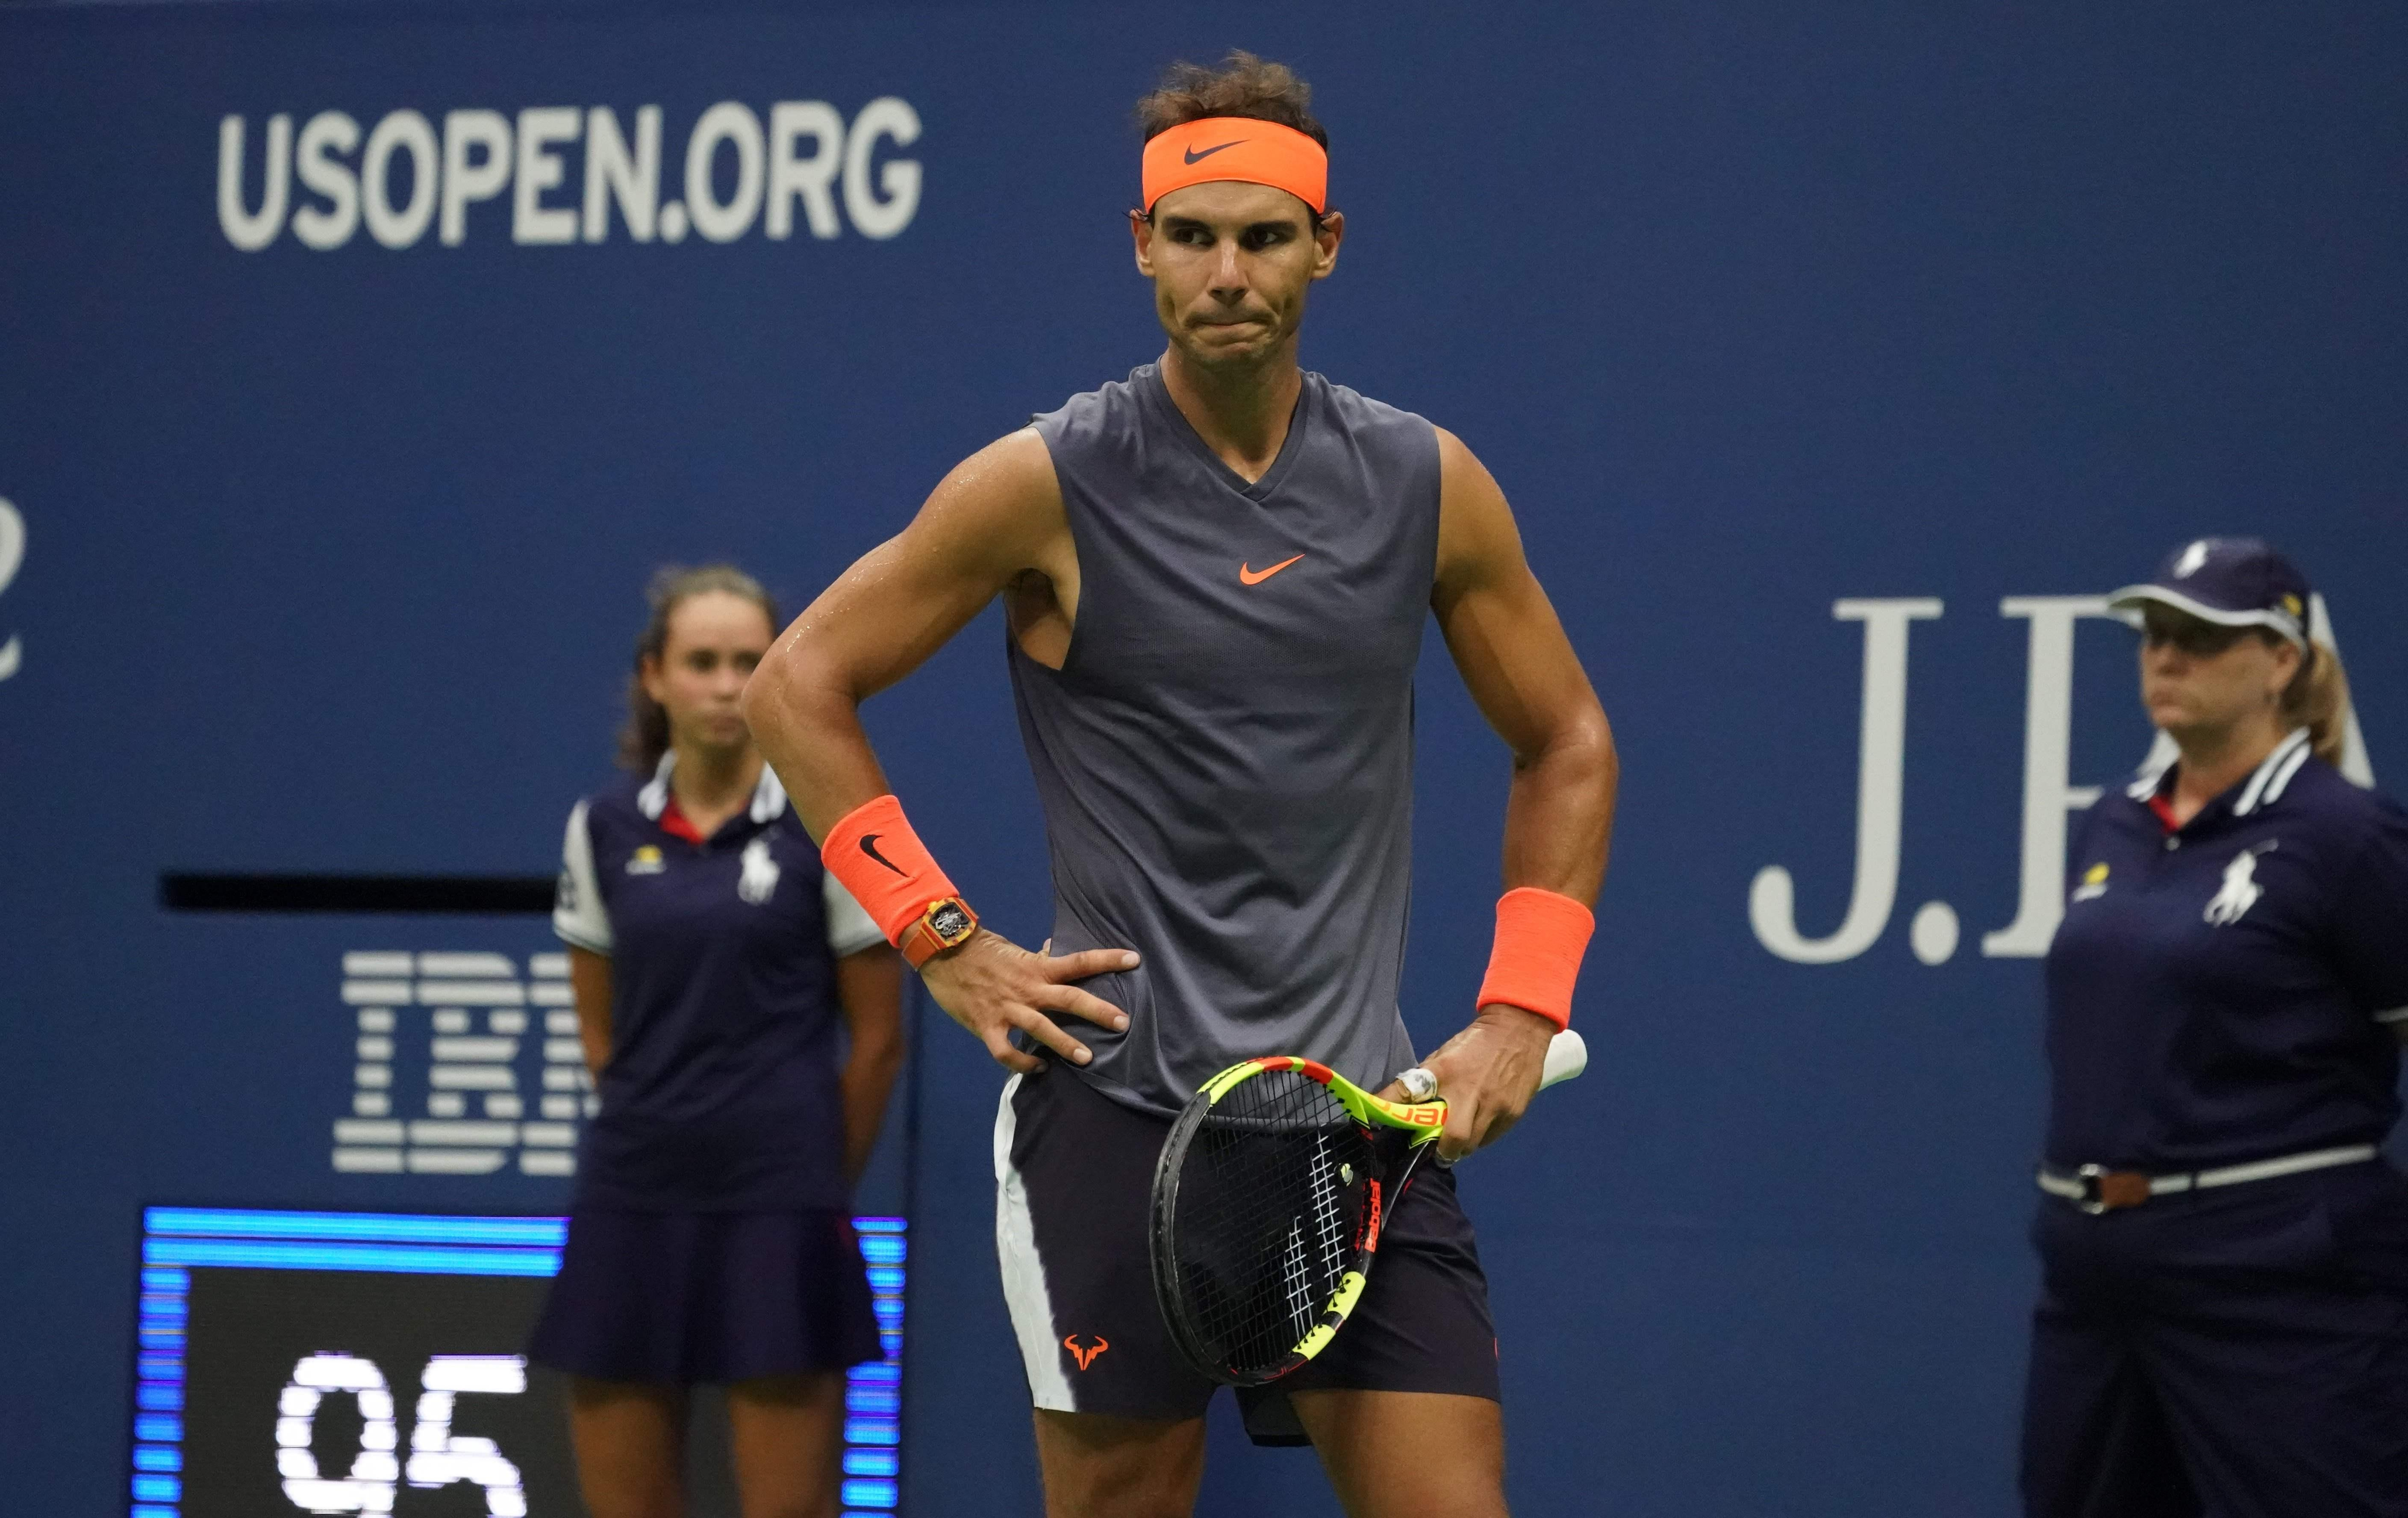 Rafael Nadal is OUT of the US Open after retiring from his semi-final